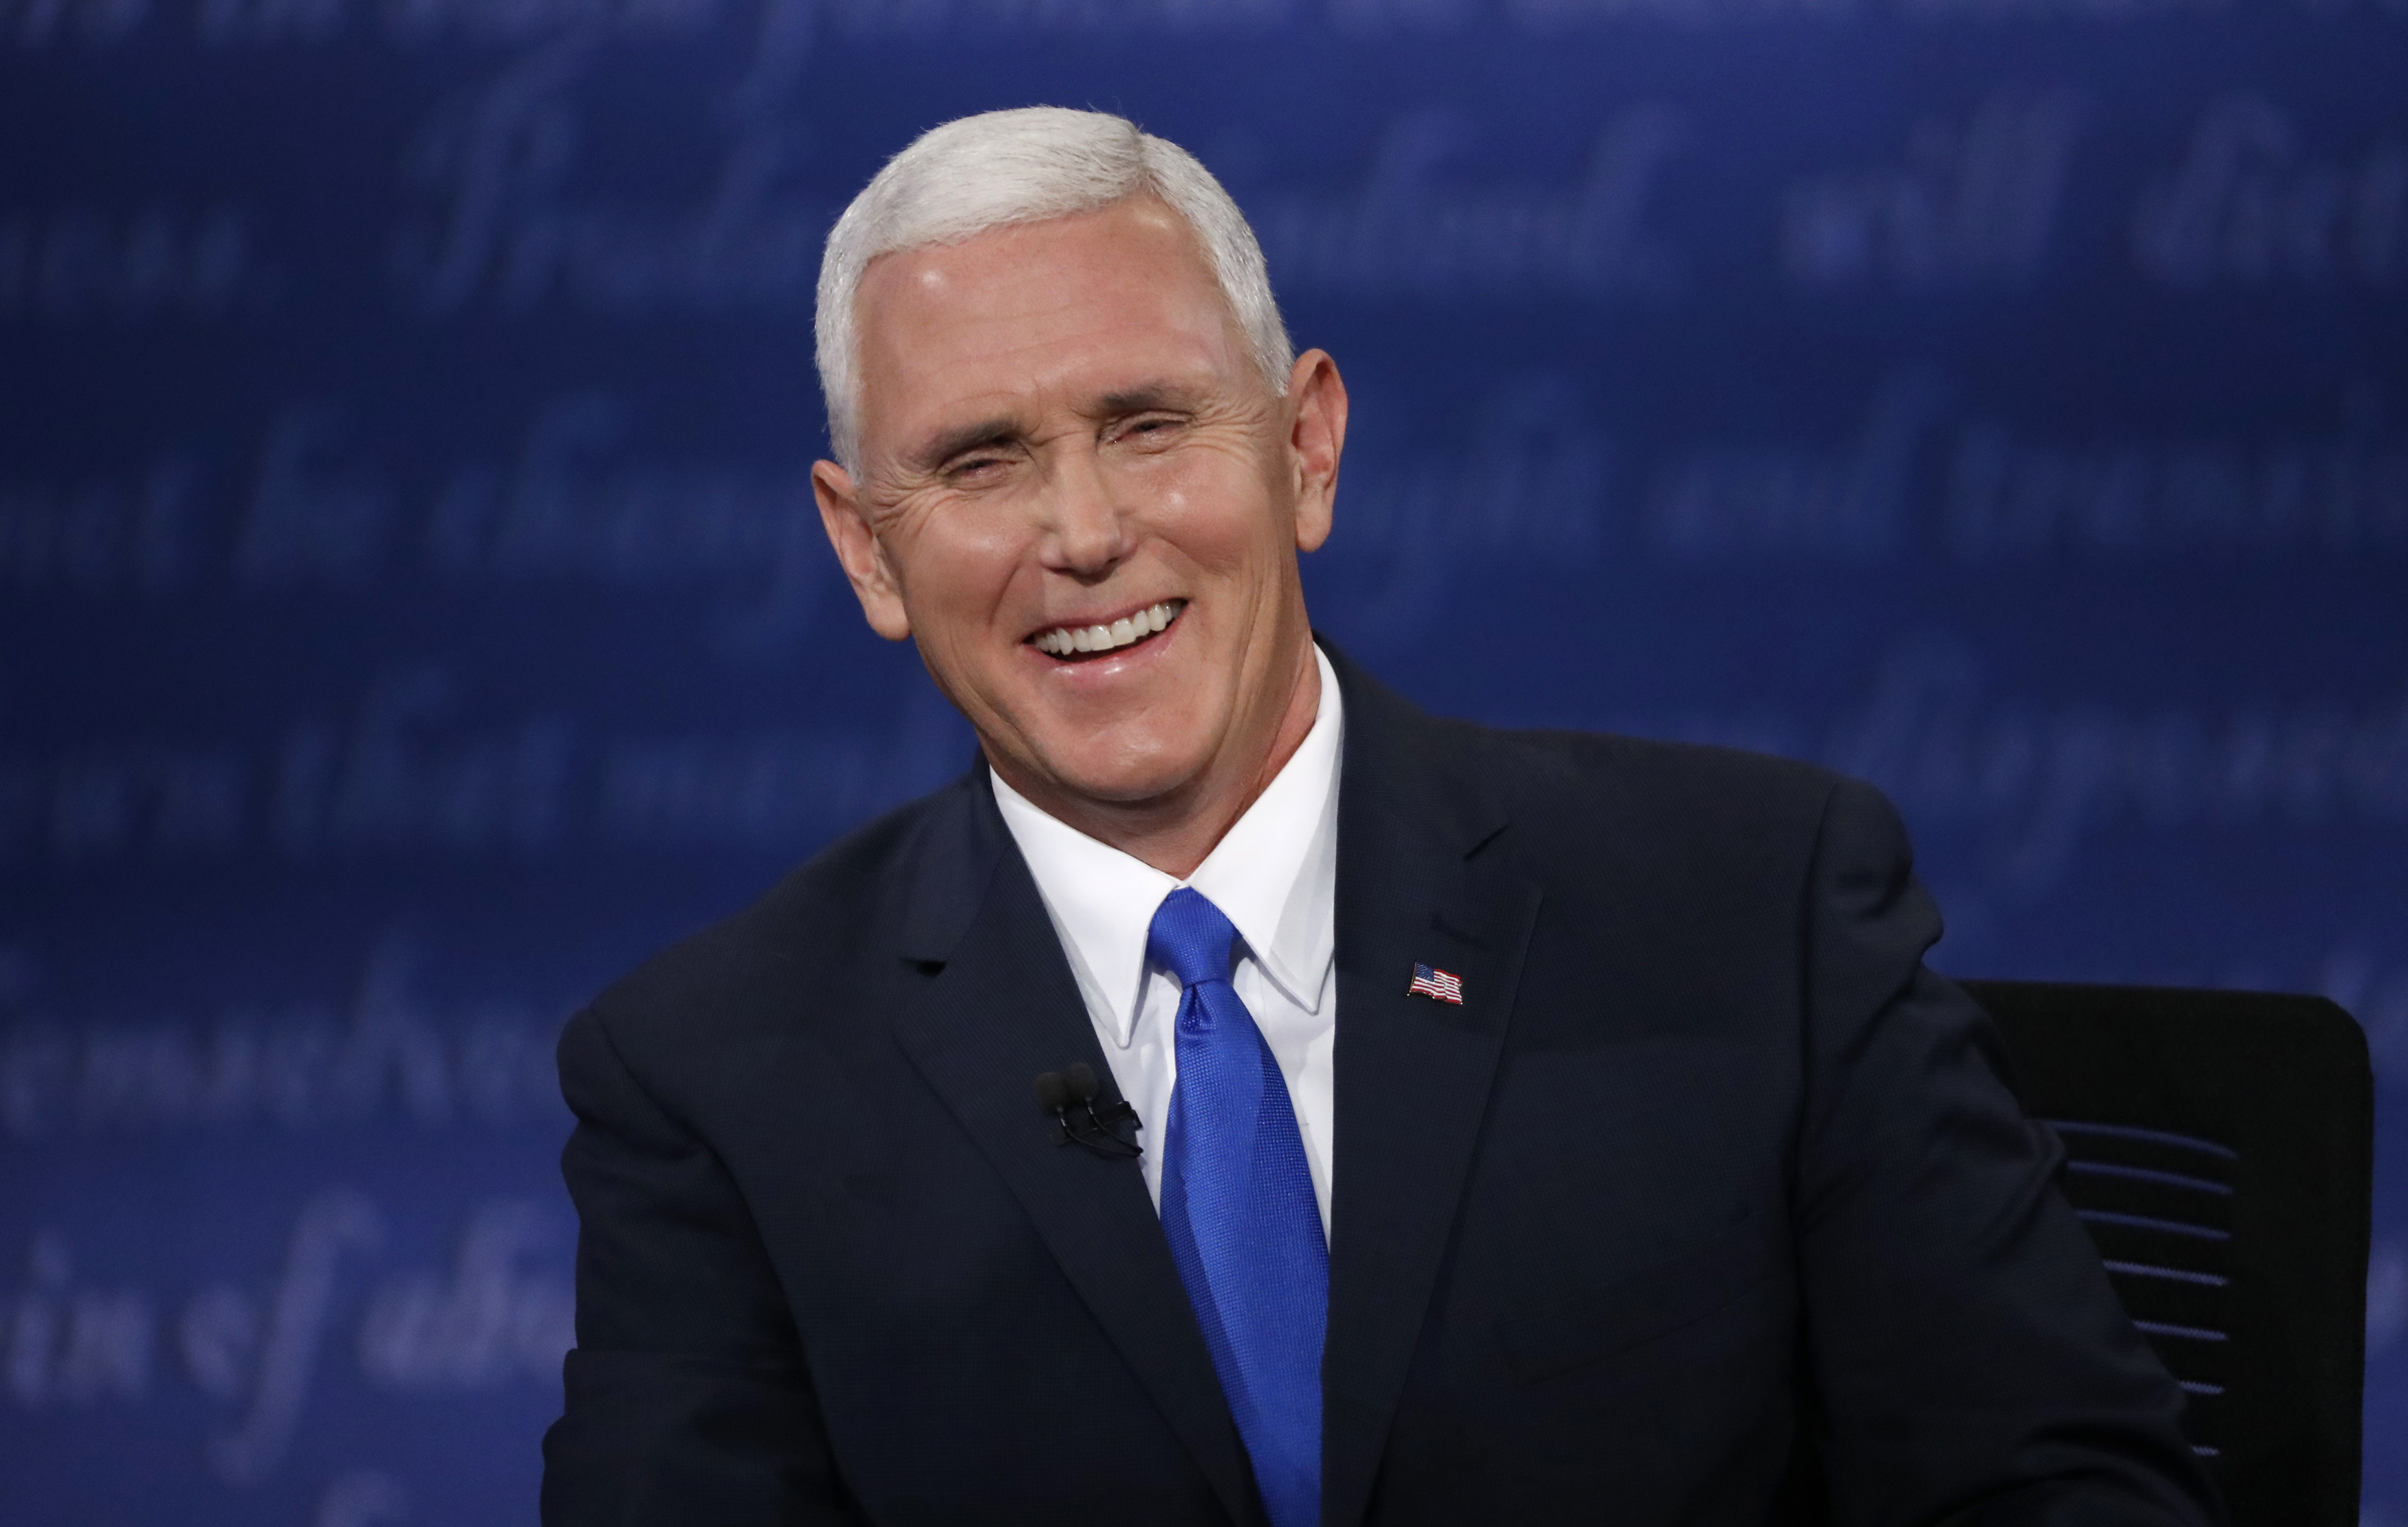 Pence to visit Mexico-California border with caravan of asylum-seekers nearby